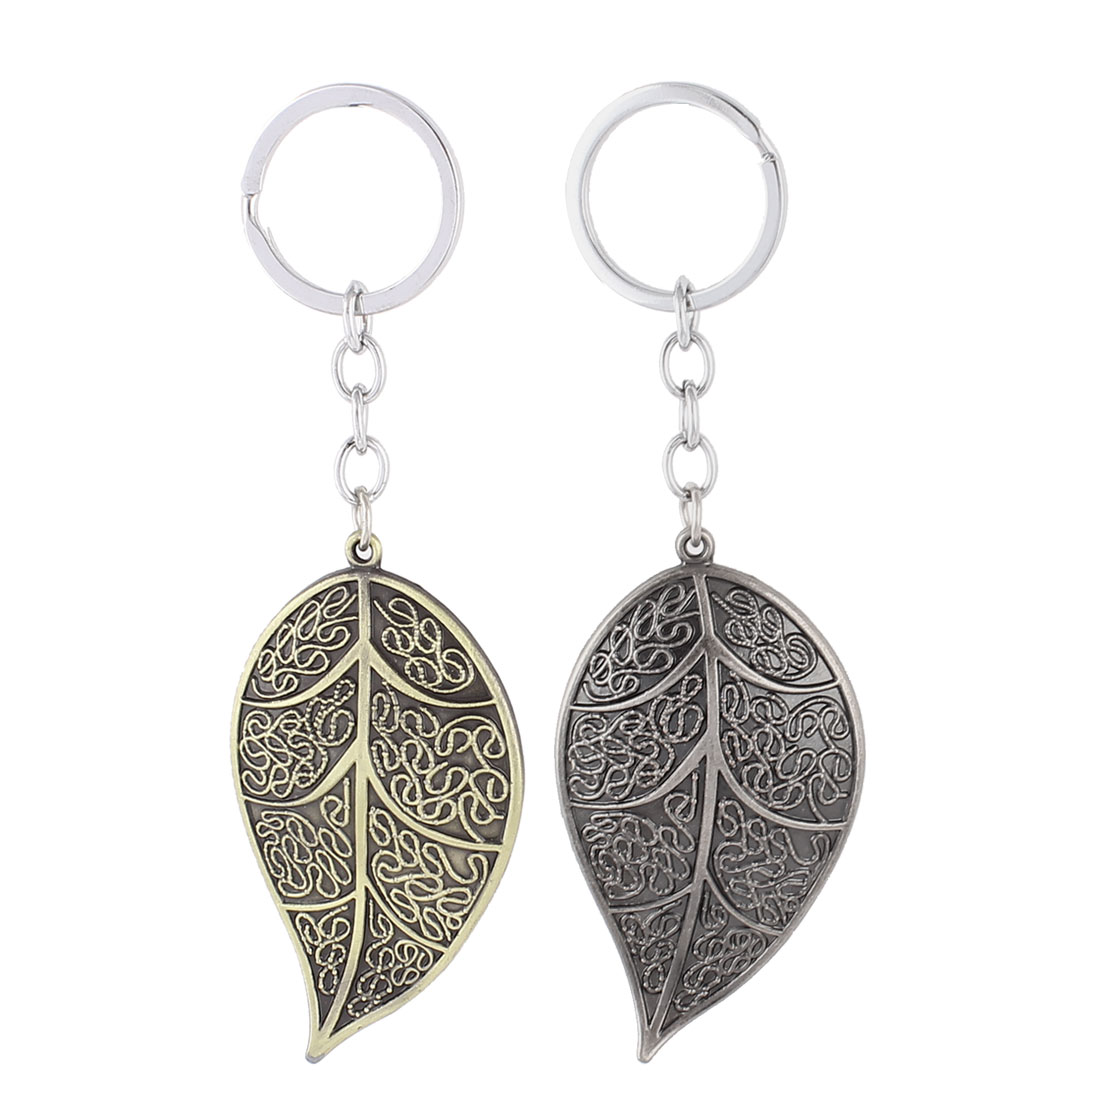 Metal Leaf Shaped Pendant Keyring Keychain Key Ring Ornament 6.5 x 4cm 2Pcs